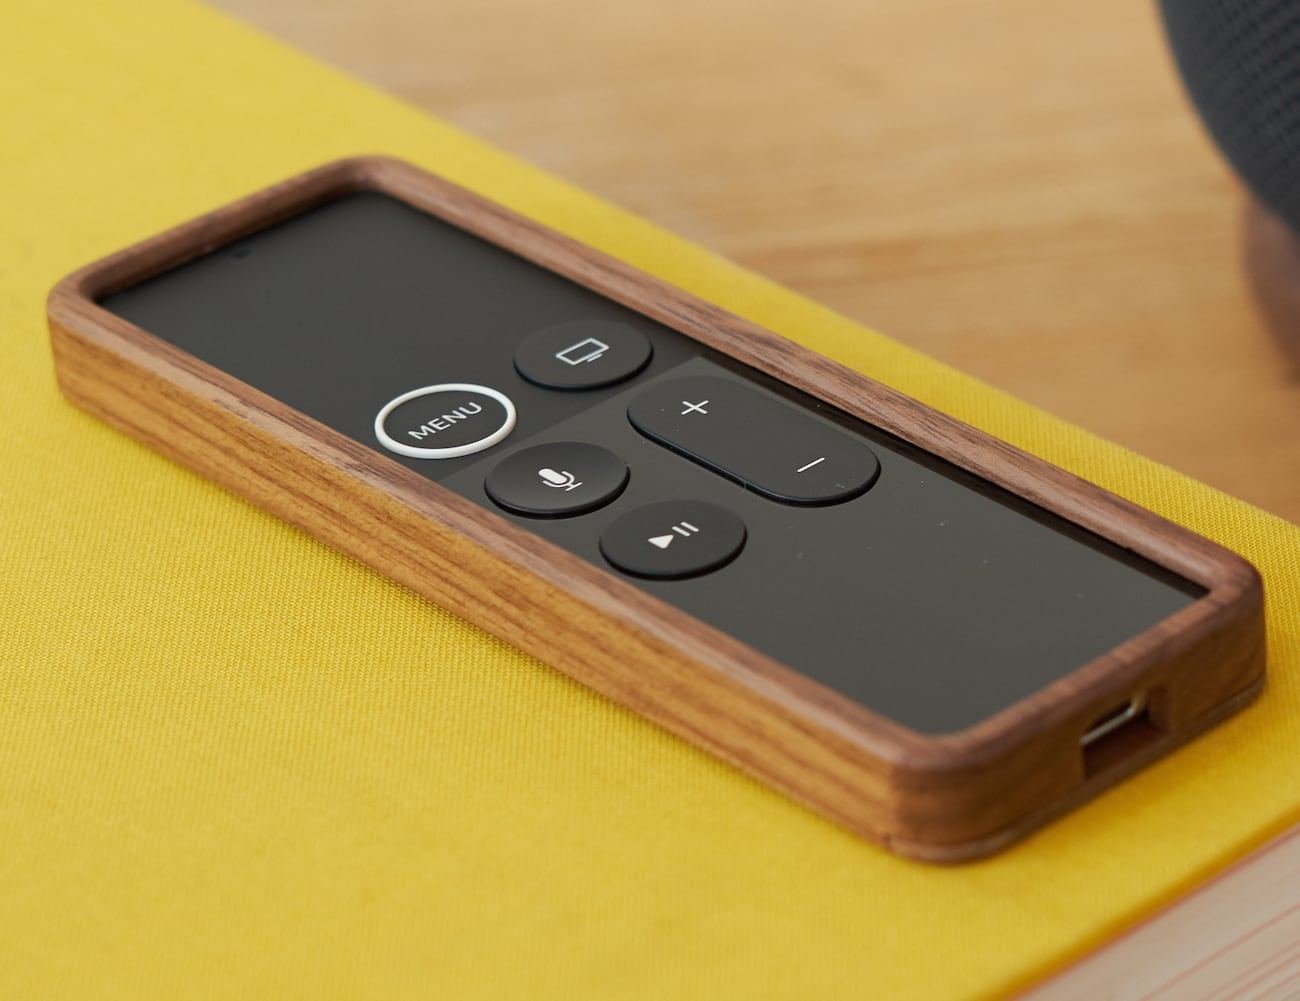 Flösku Apple TV Remote Case gives your remote an elegant accent